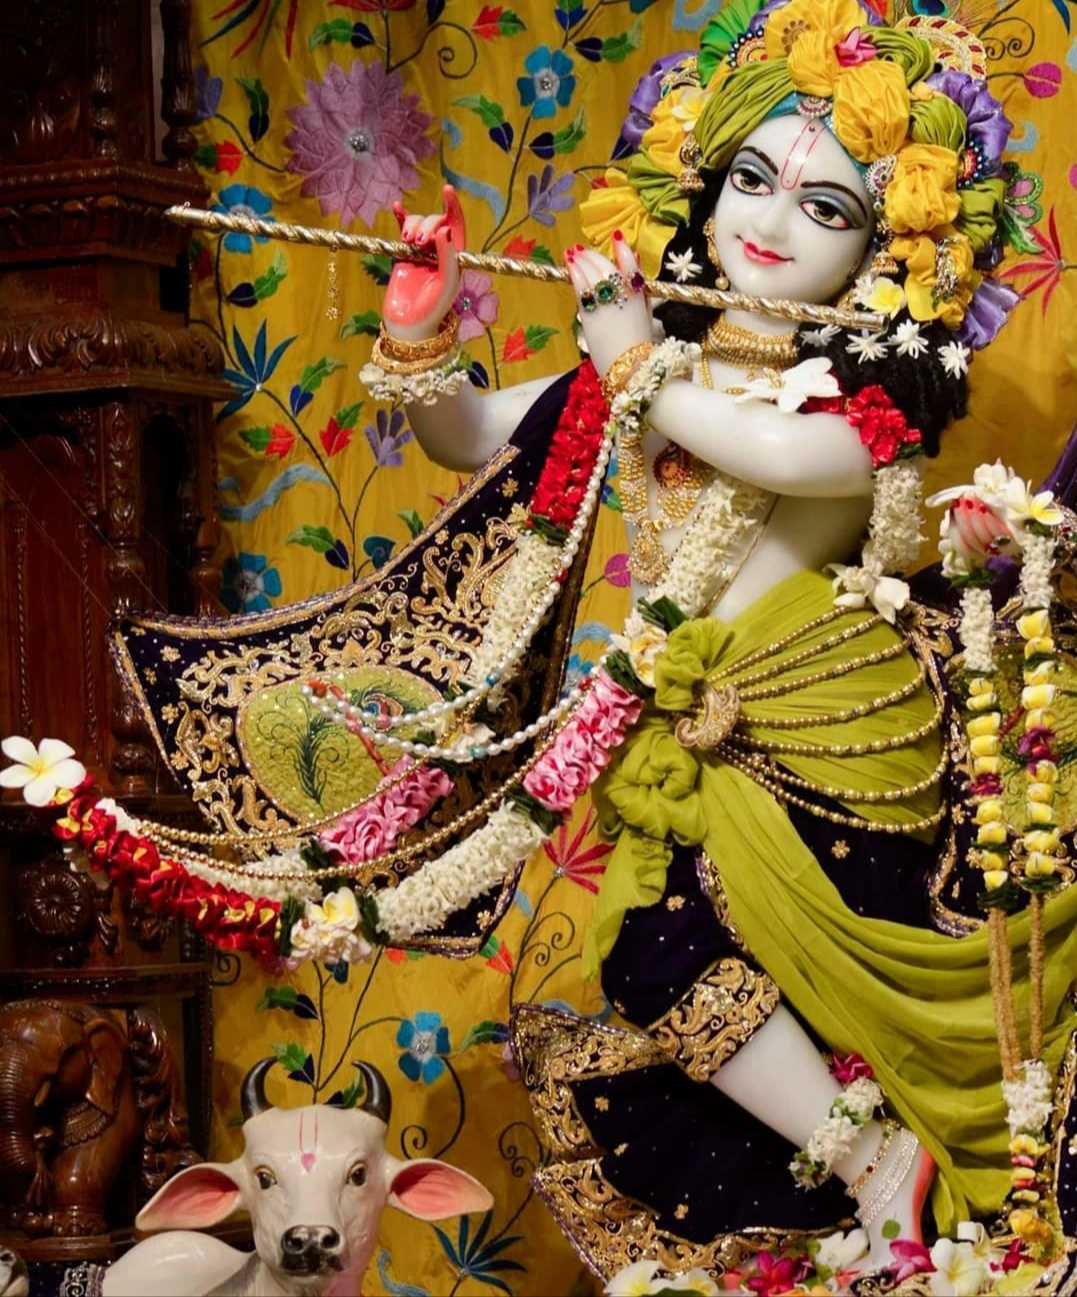 Iskcon Krishna Instagram Wallpapers - Iskcon Shree Krishna Instagram Wallpapers. Iskcon community dedicated to the devotion of Shree Krishna. You no need to worry about problems if you believe in Lord Krishna.